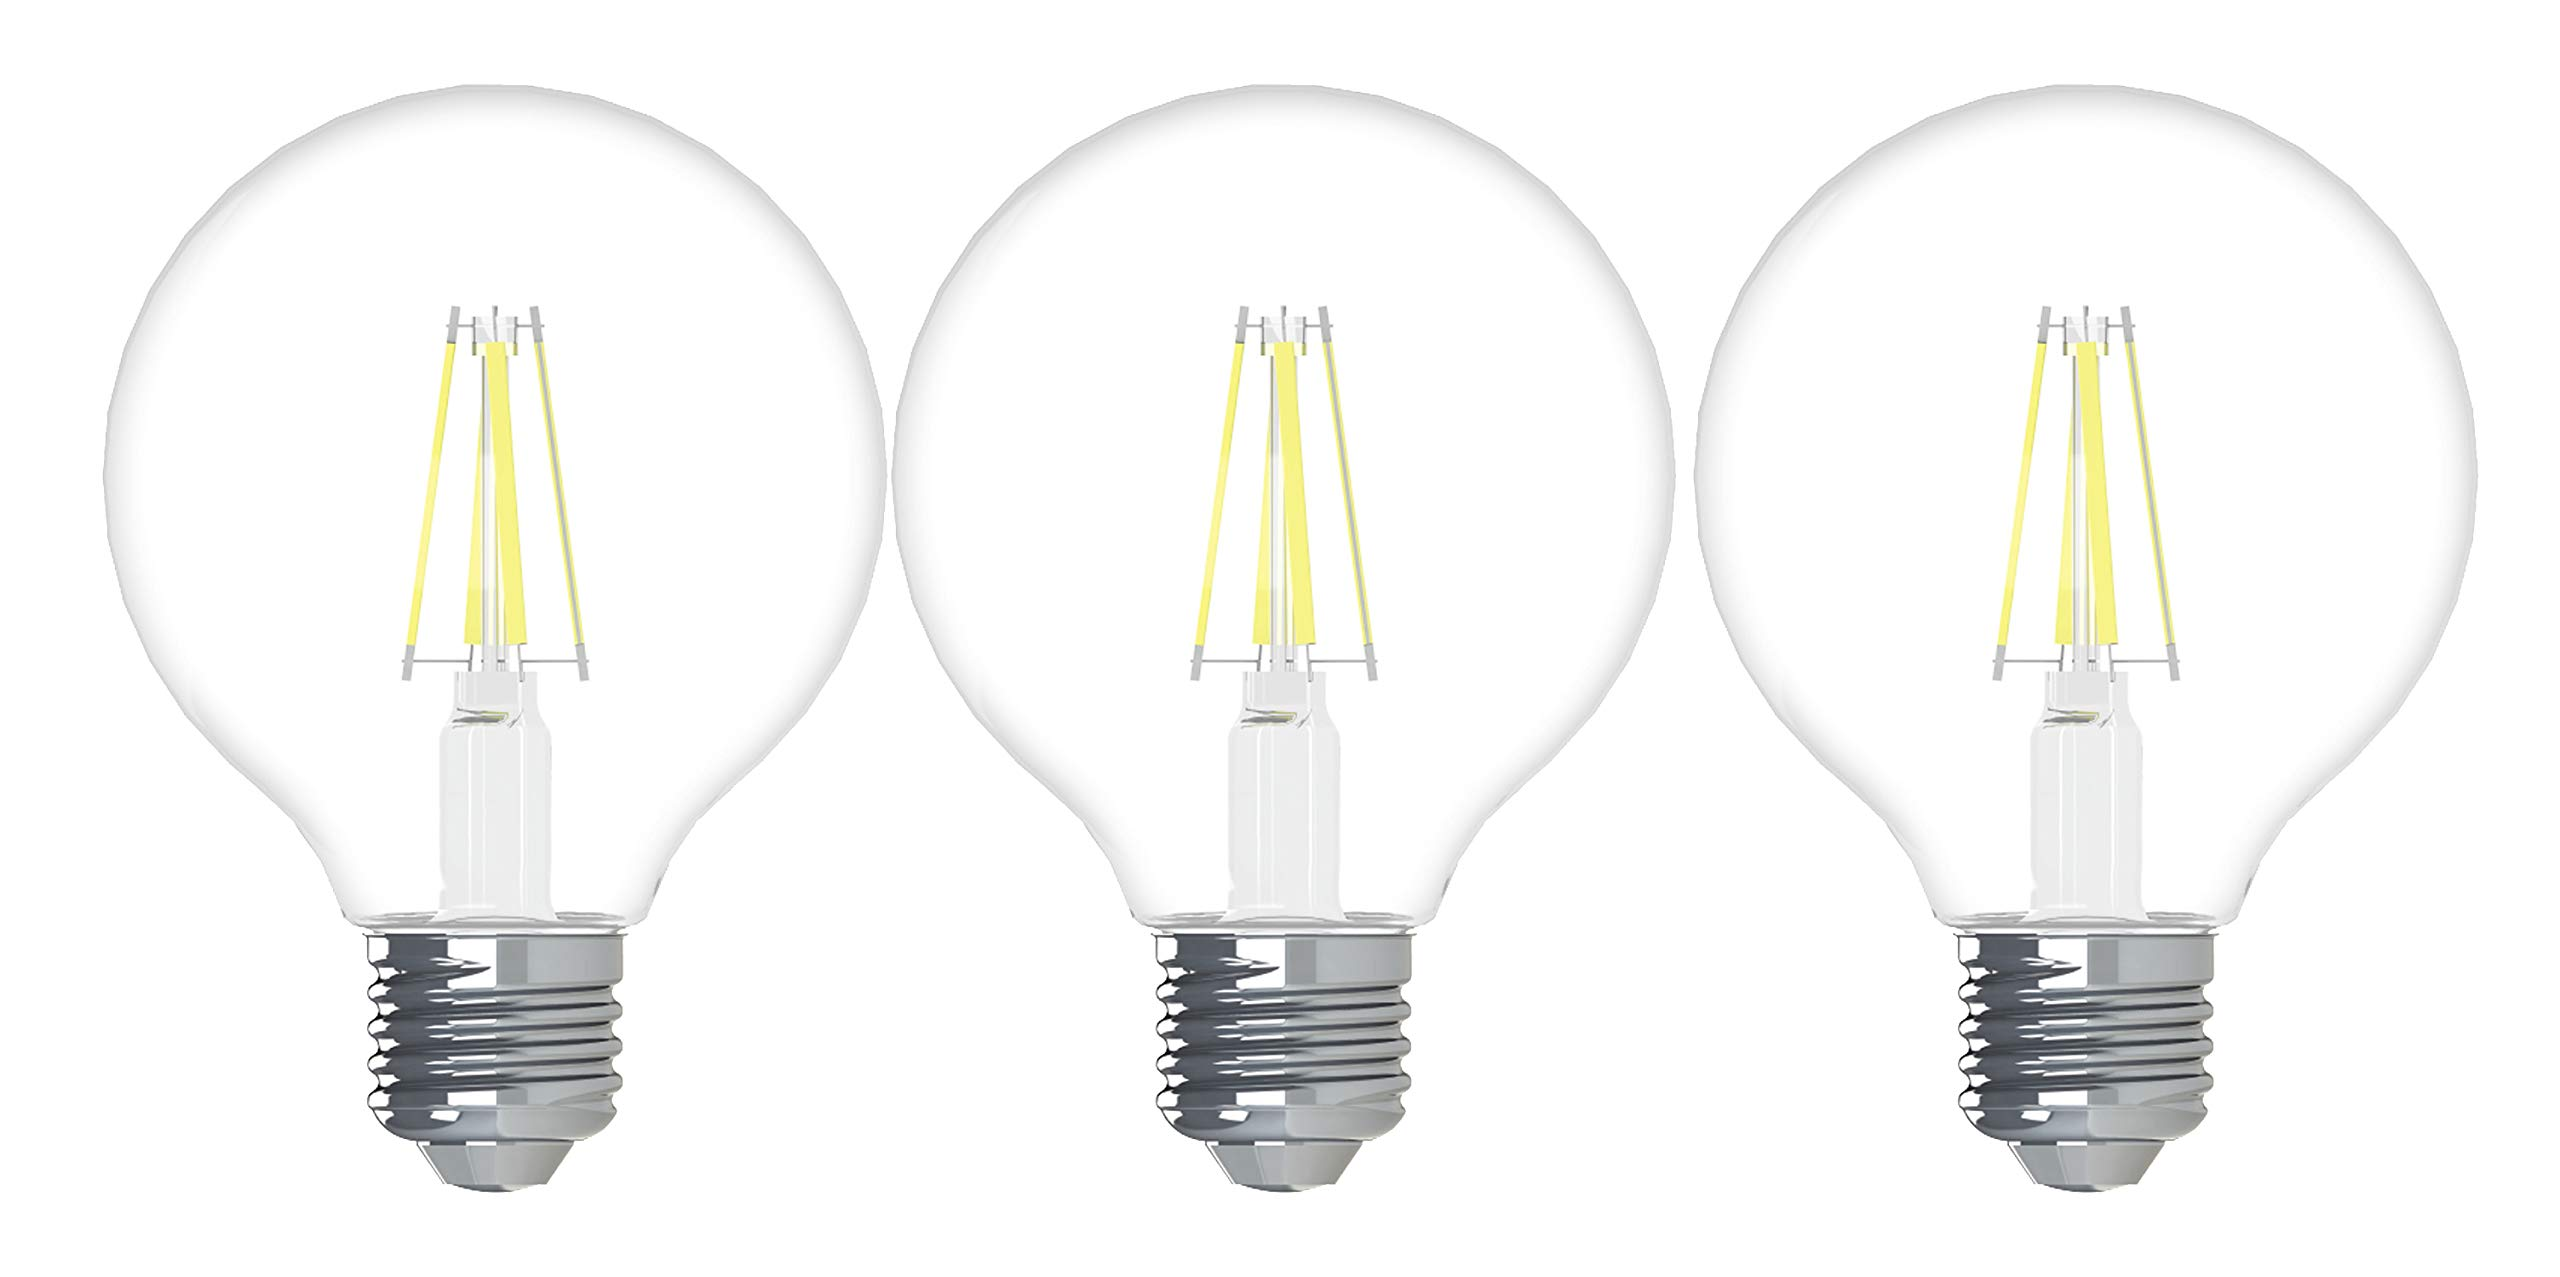 GE Lighting 43306 Relax HD LED (60-Watt Replacement), 500-Lumen G25 Bulb, Medium Base, Soft White Clear, 3-Pack, Title 20 Compliant, 3 Count